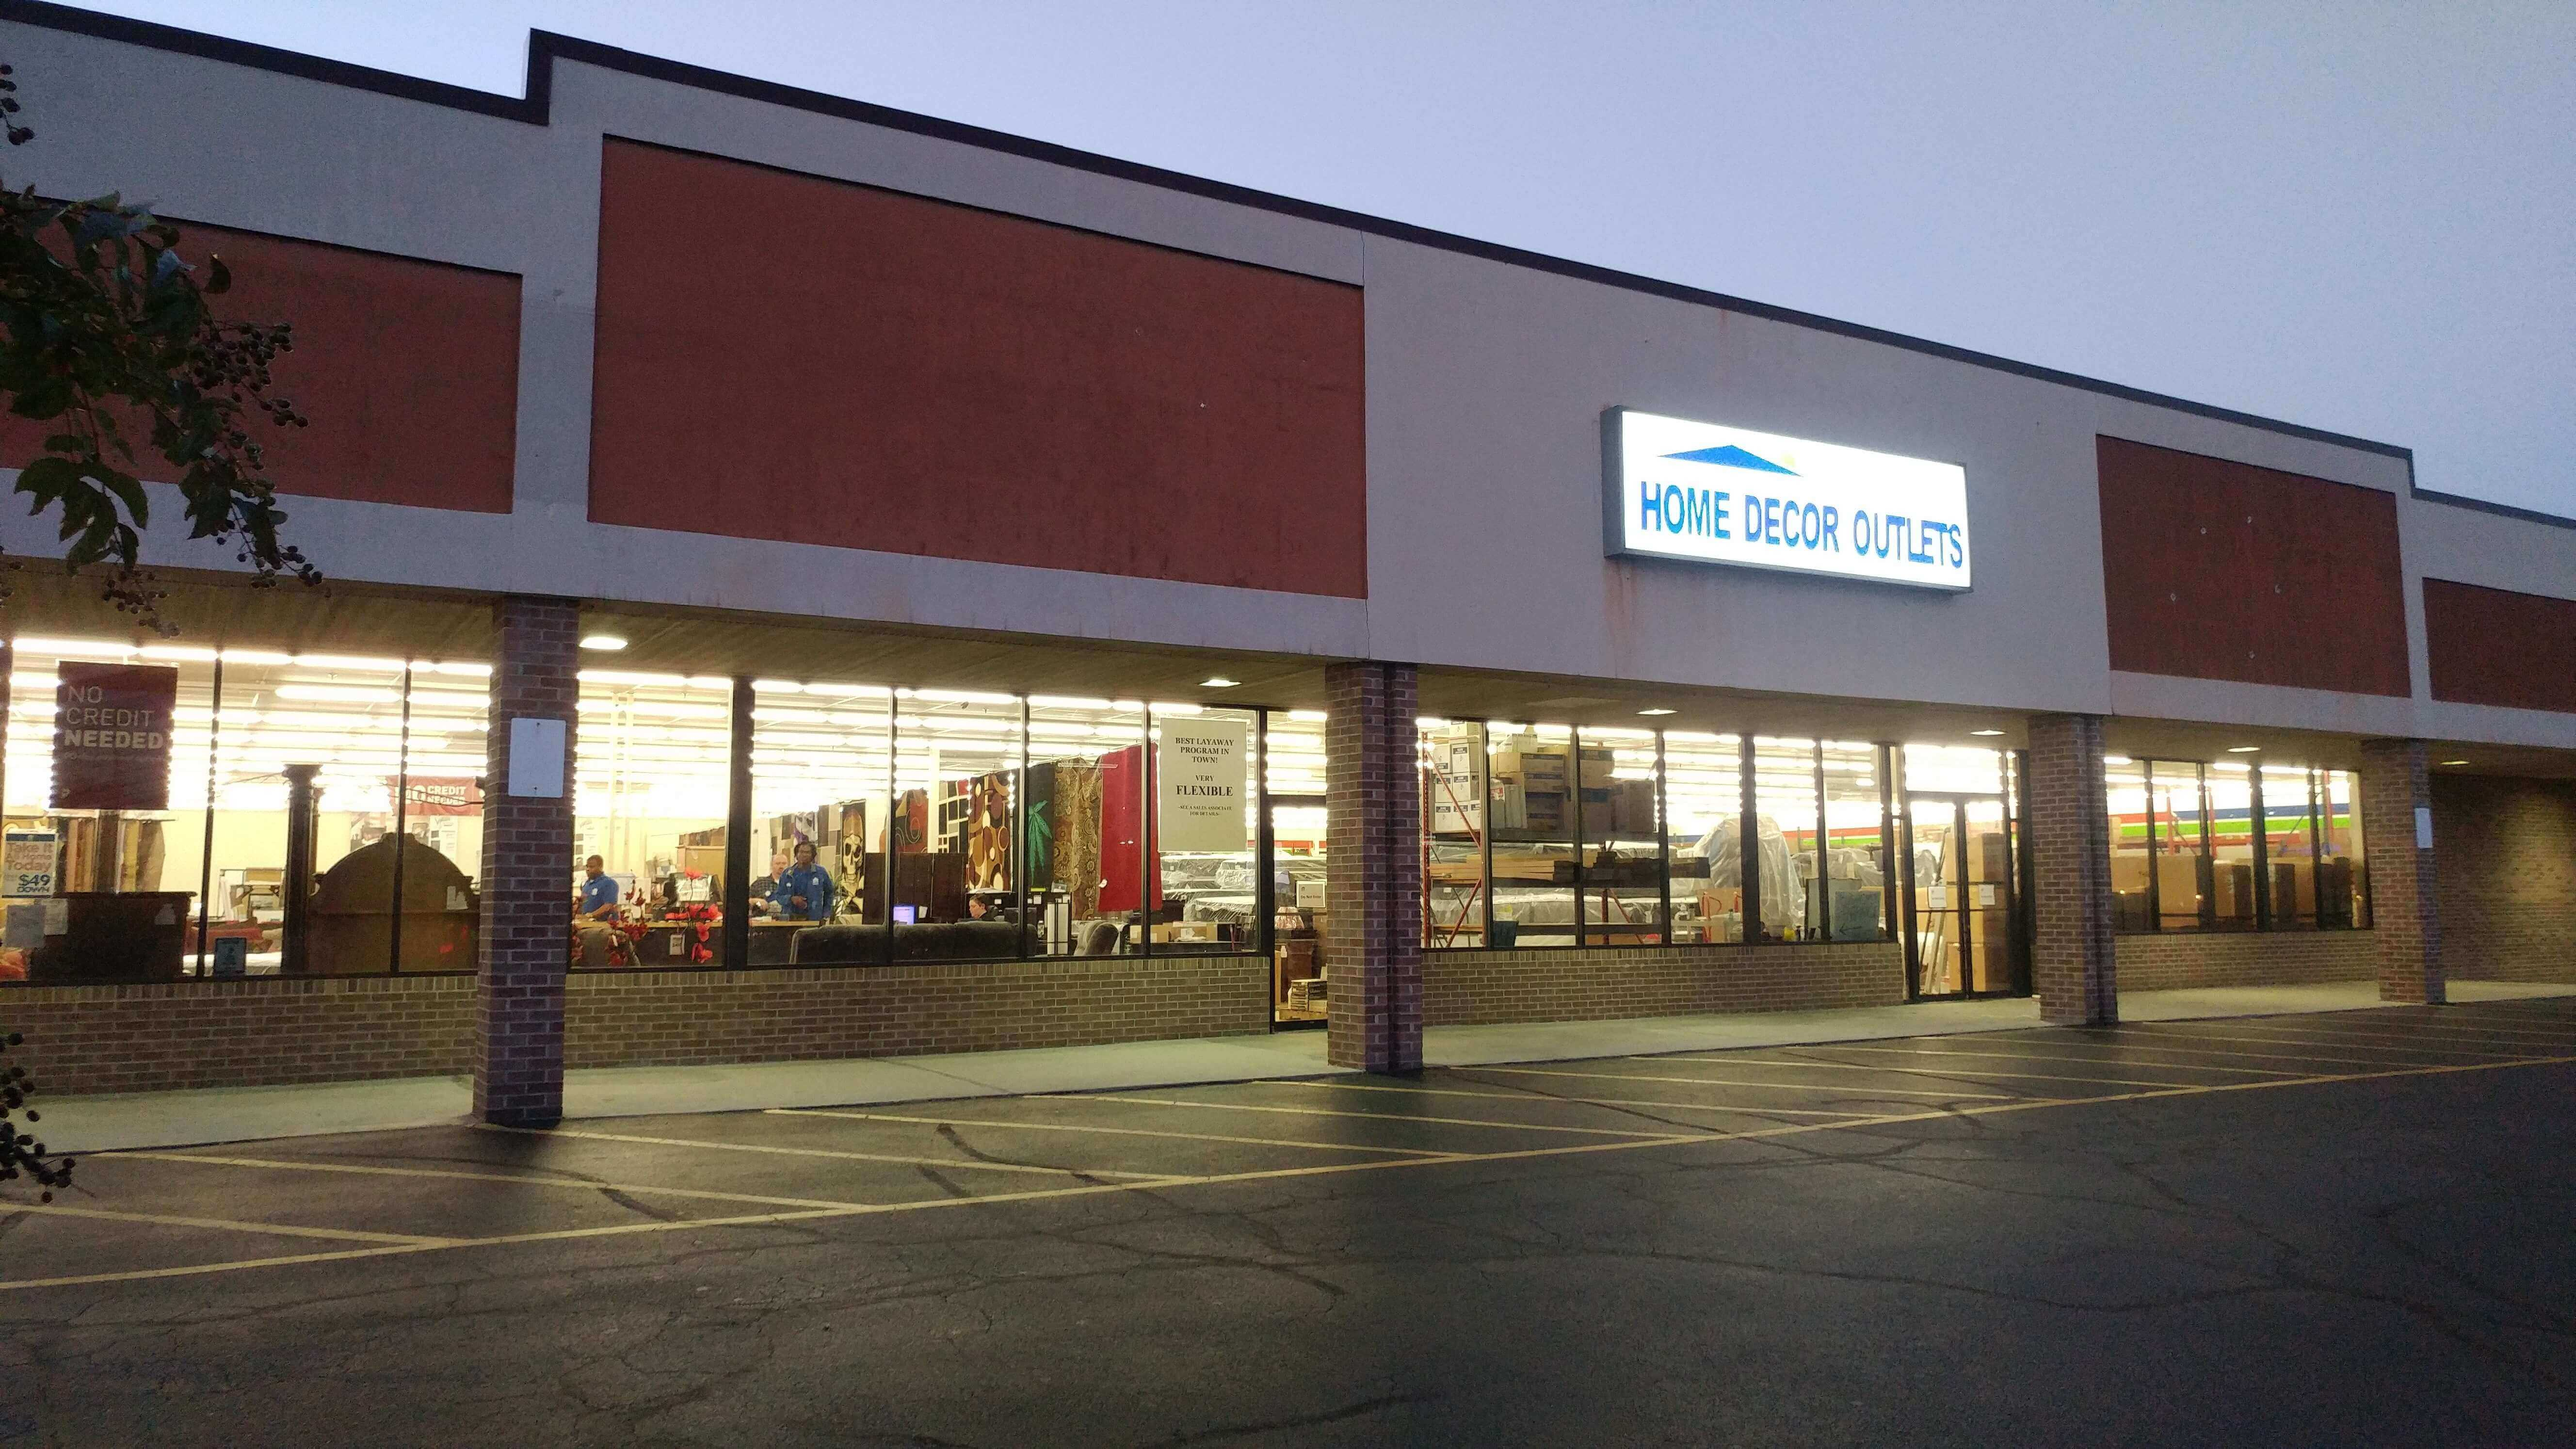 The Best Furniture And Mattress Store Near You Home Decor Outlets